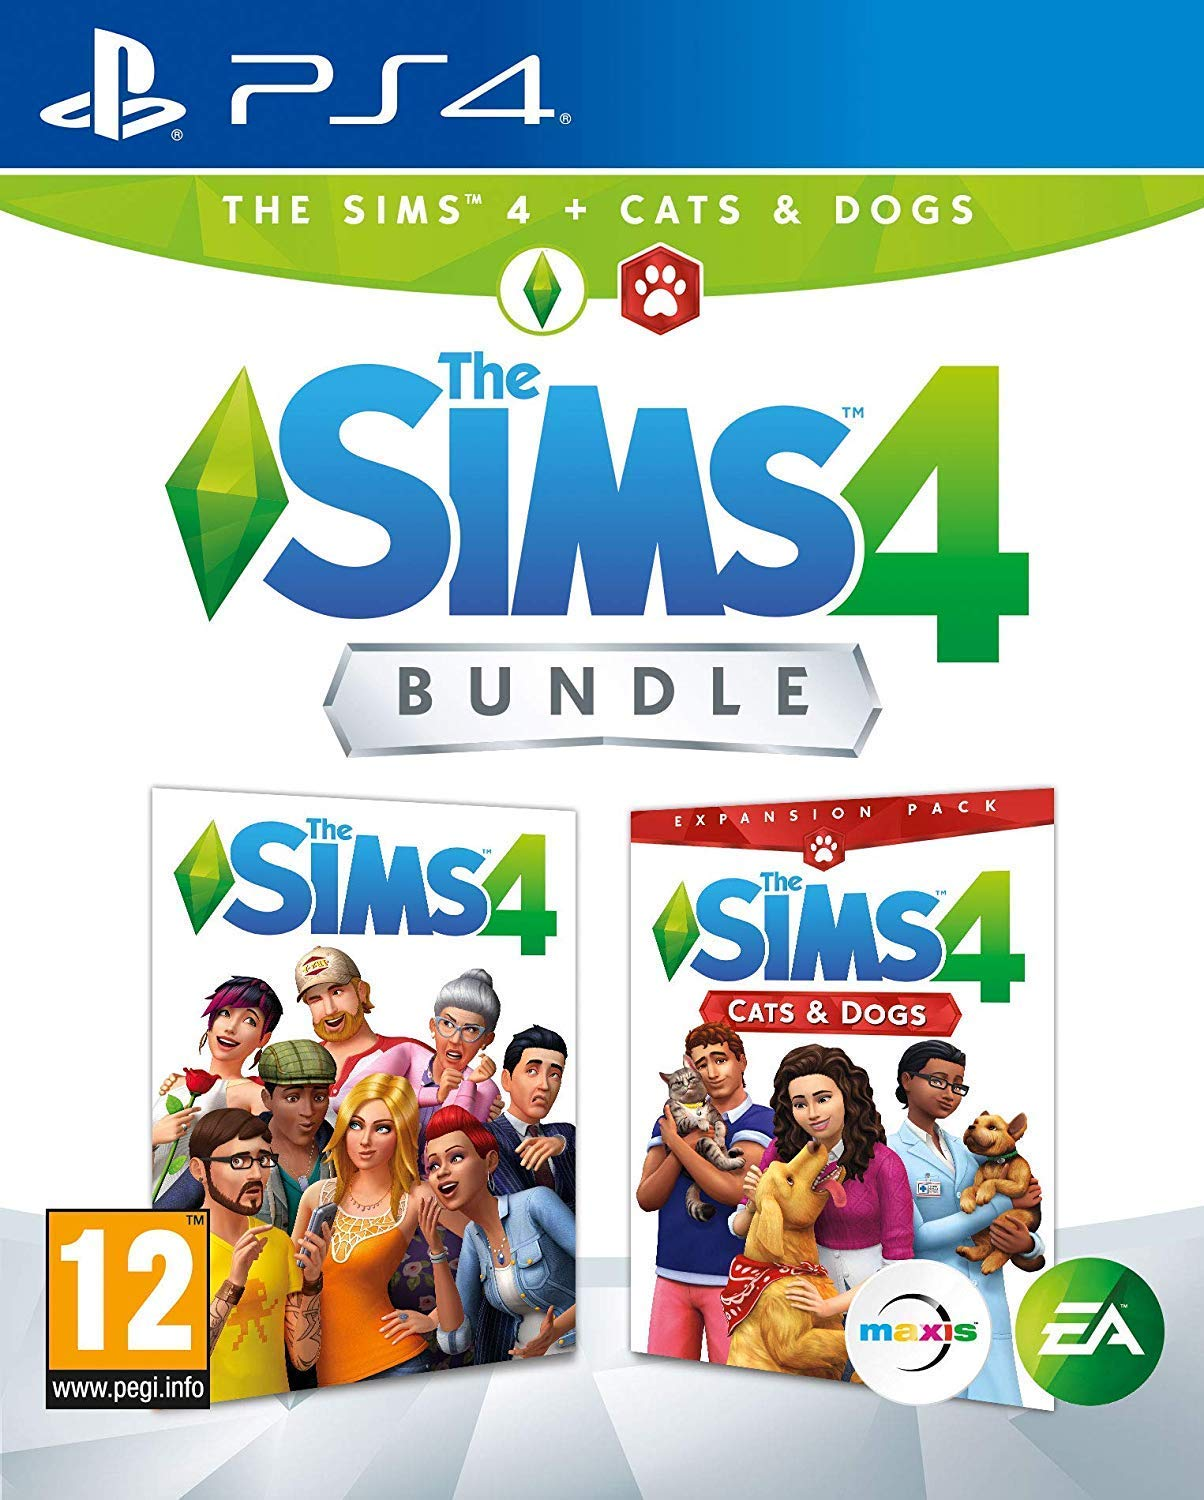 PS4 The Sims 4 Plus Cats and Dogs Bundle (PlayStation 4)